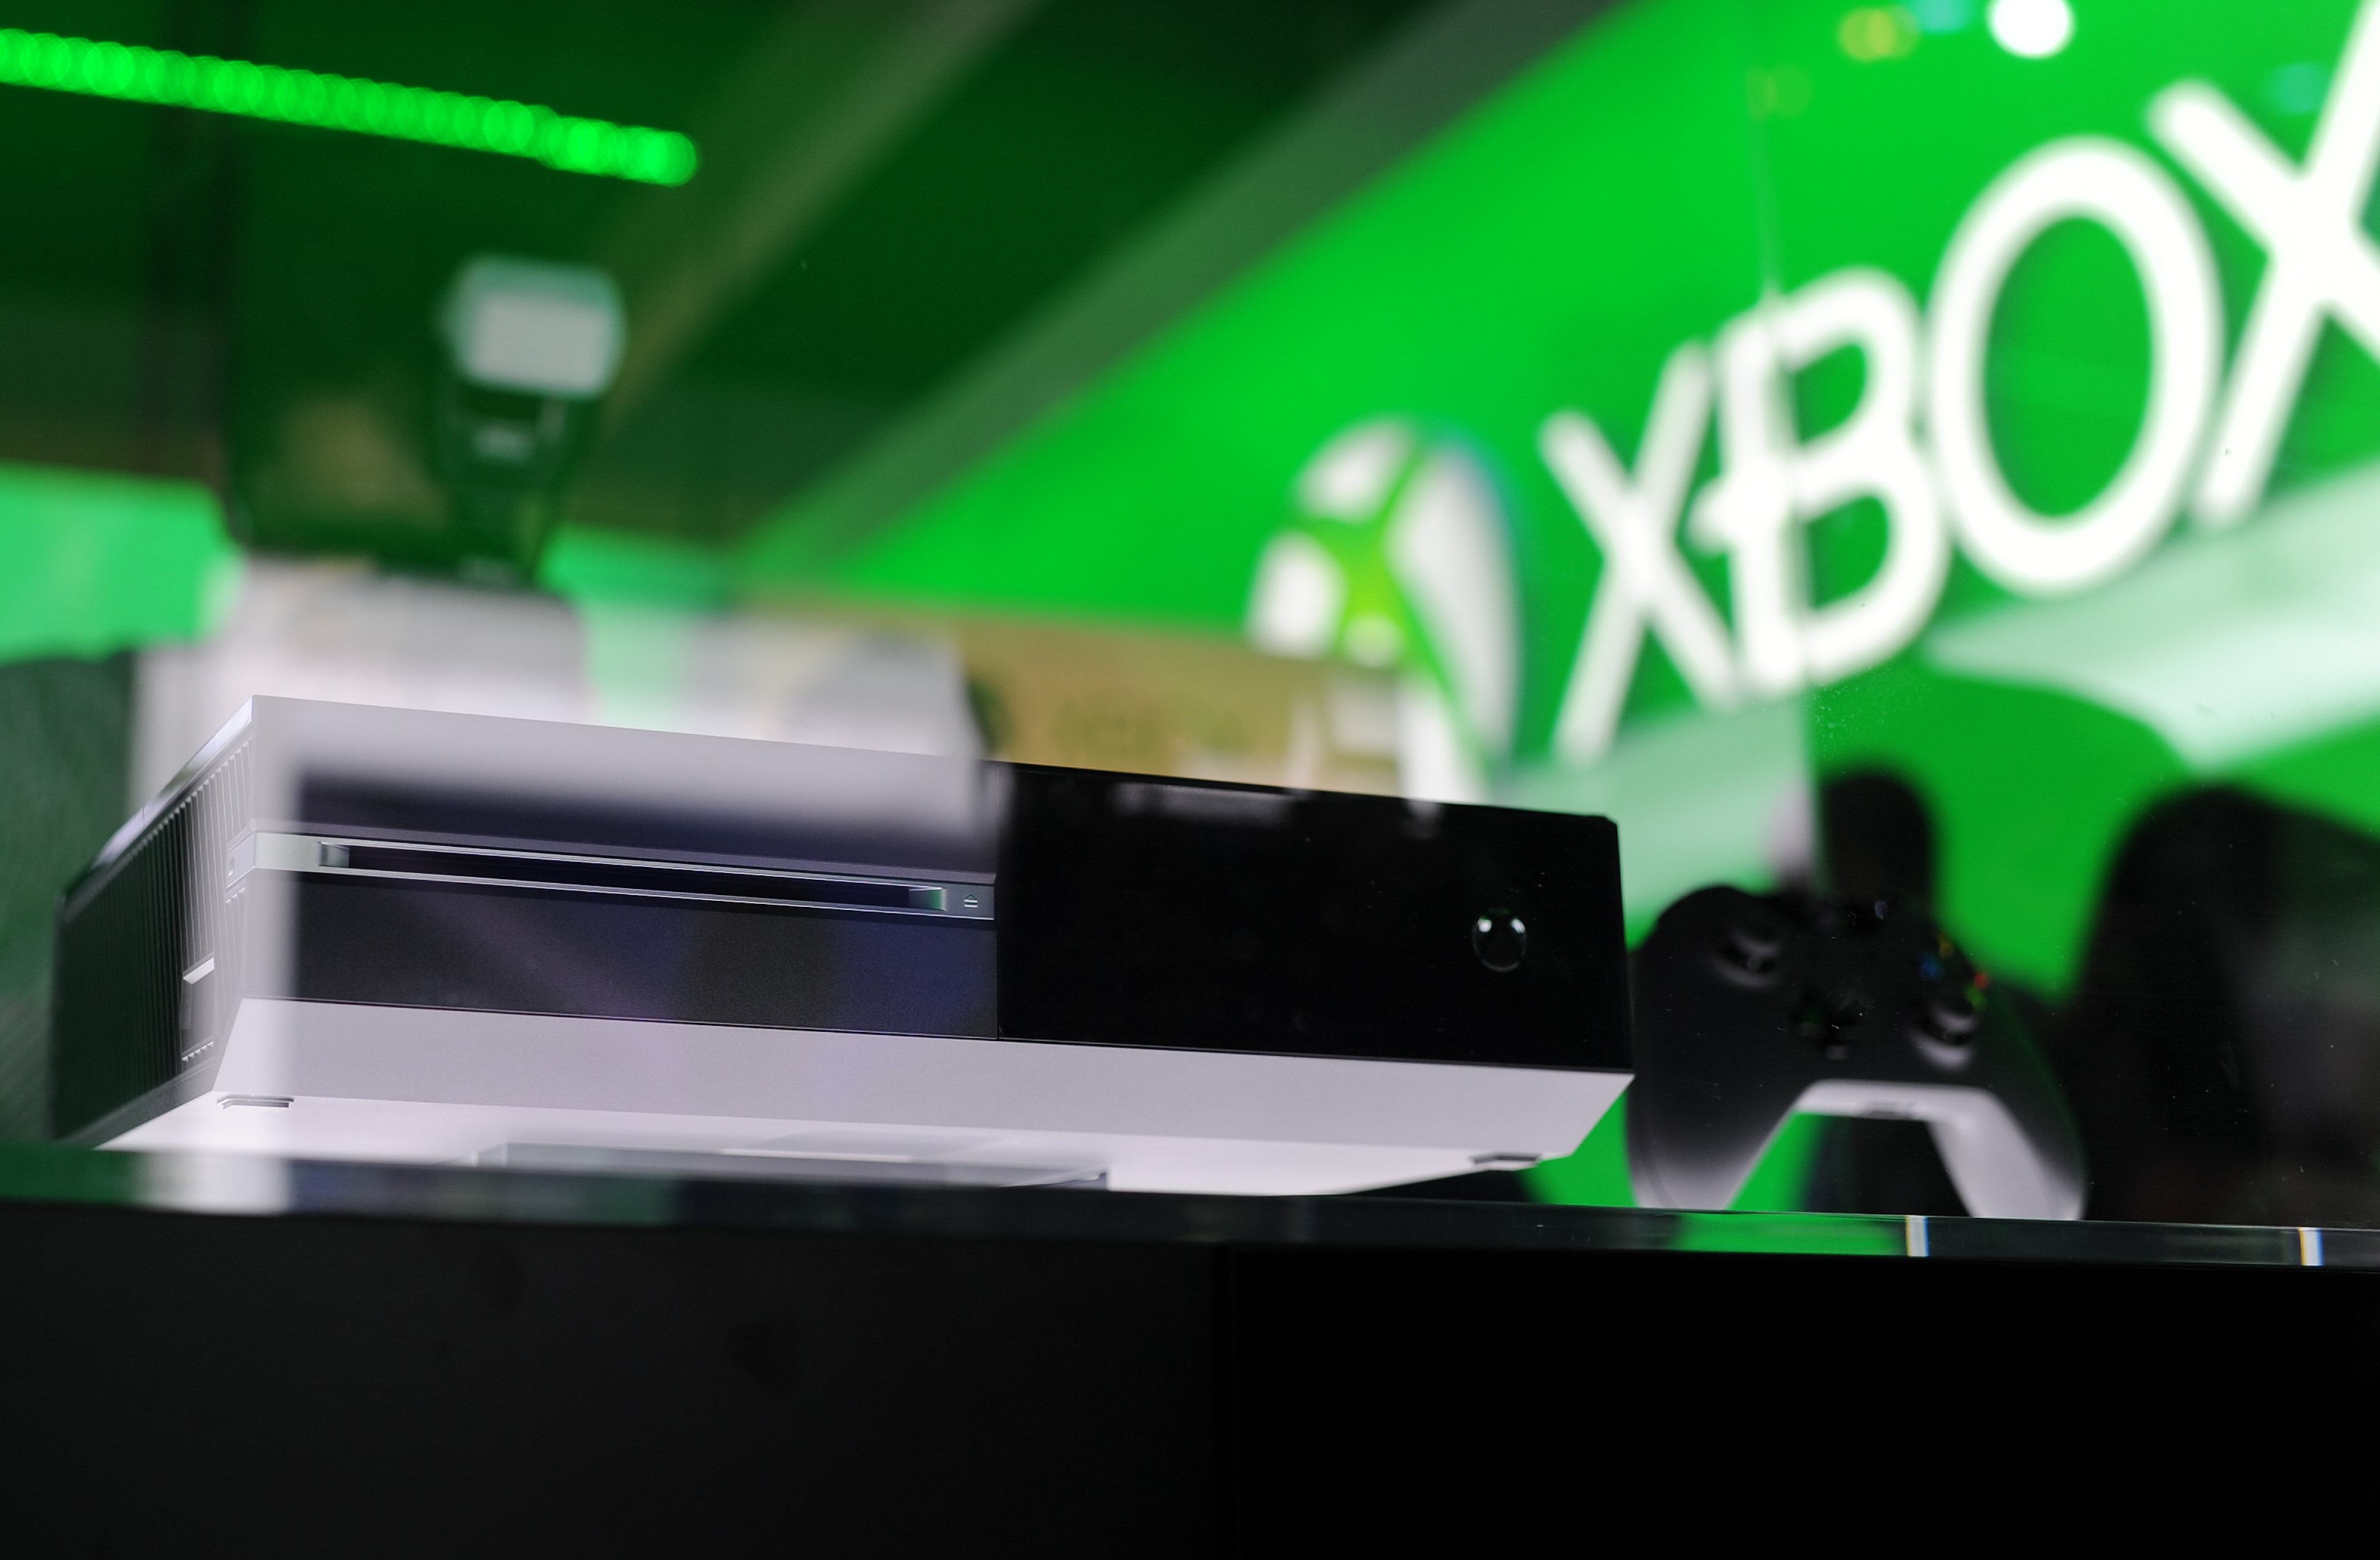 China Telecom To Start Selling Xbox One In September